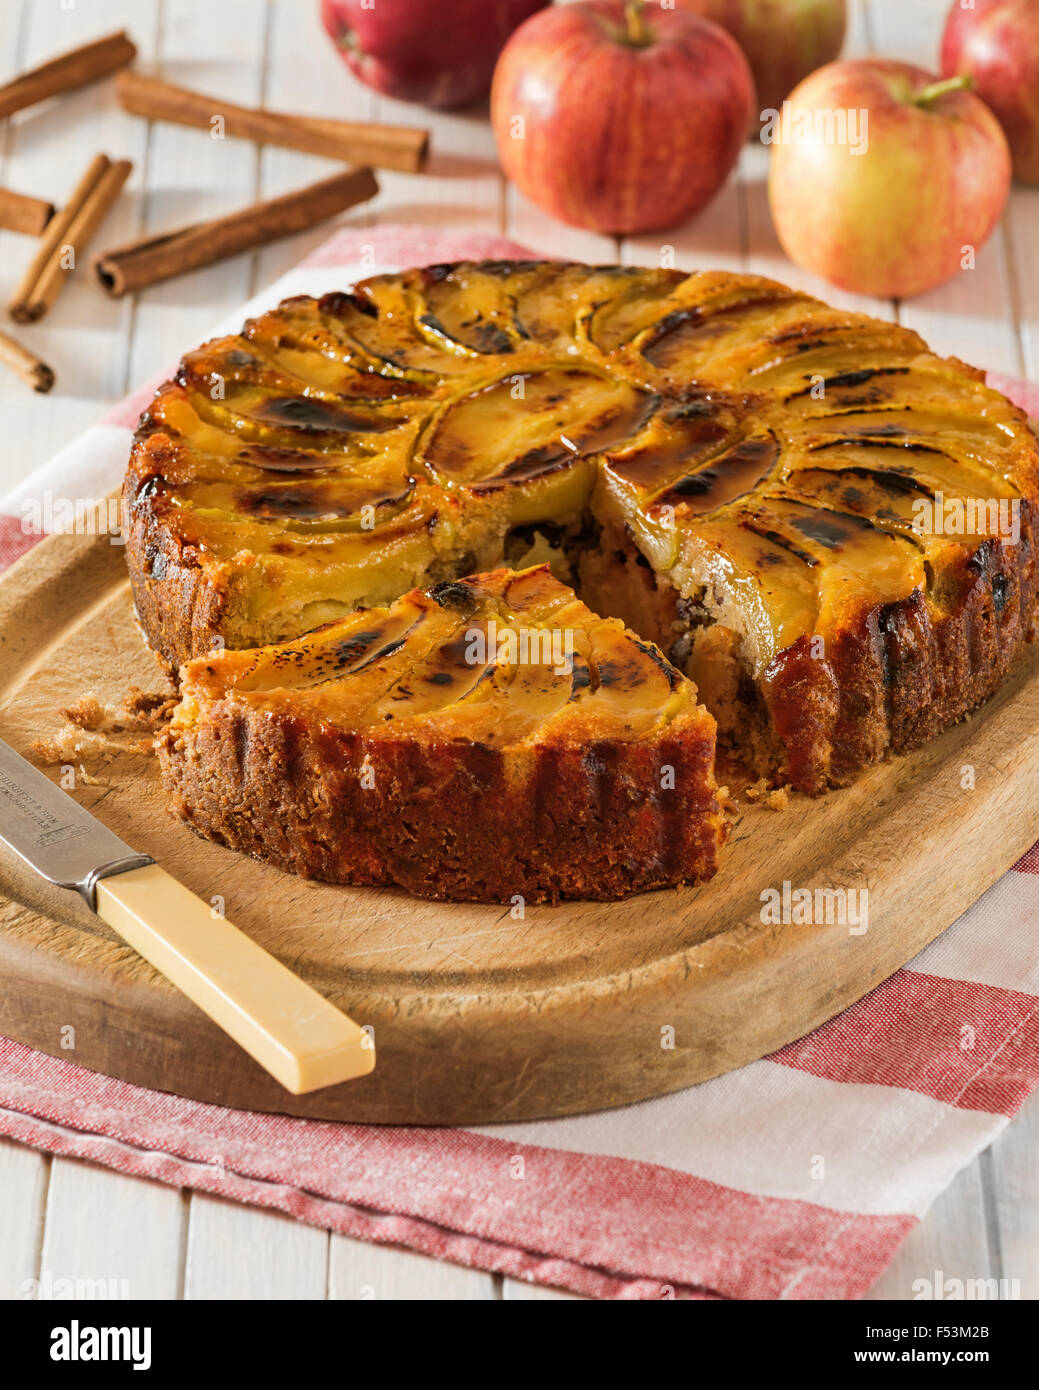 West Country Apple Cake